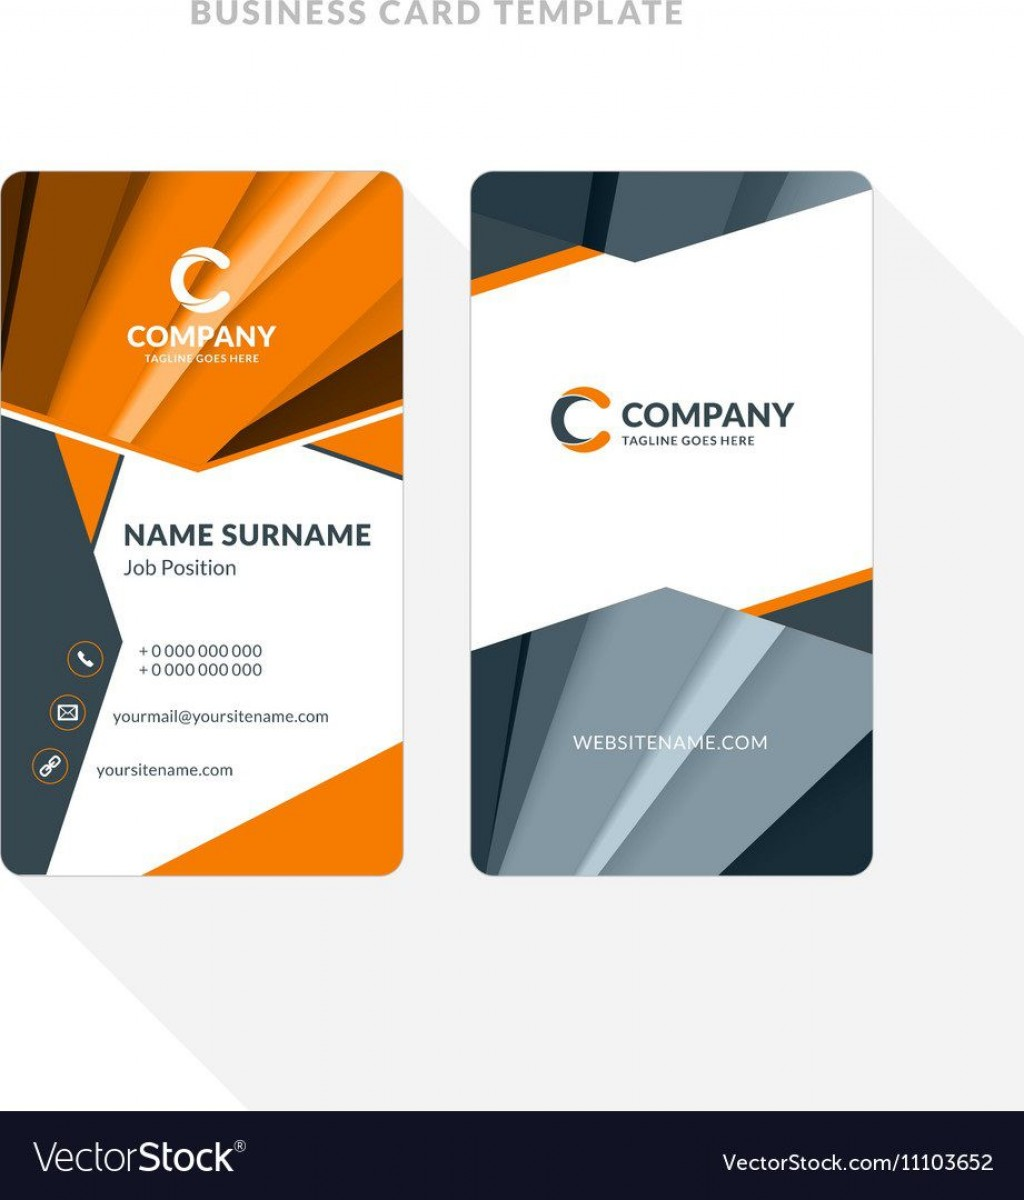 009 Archaicawful Double Sided Busines Card Template Inspiration  Templates Word Free Two MicrosoftLarge